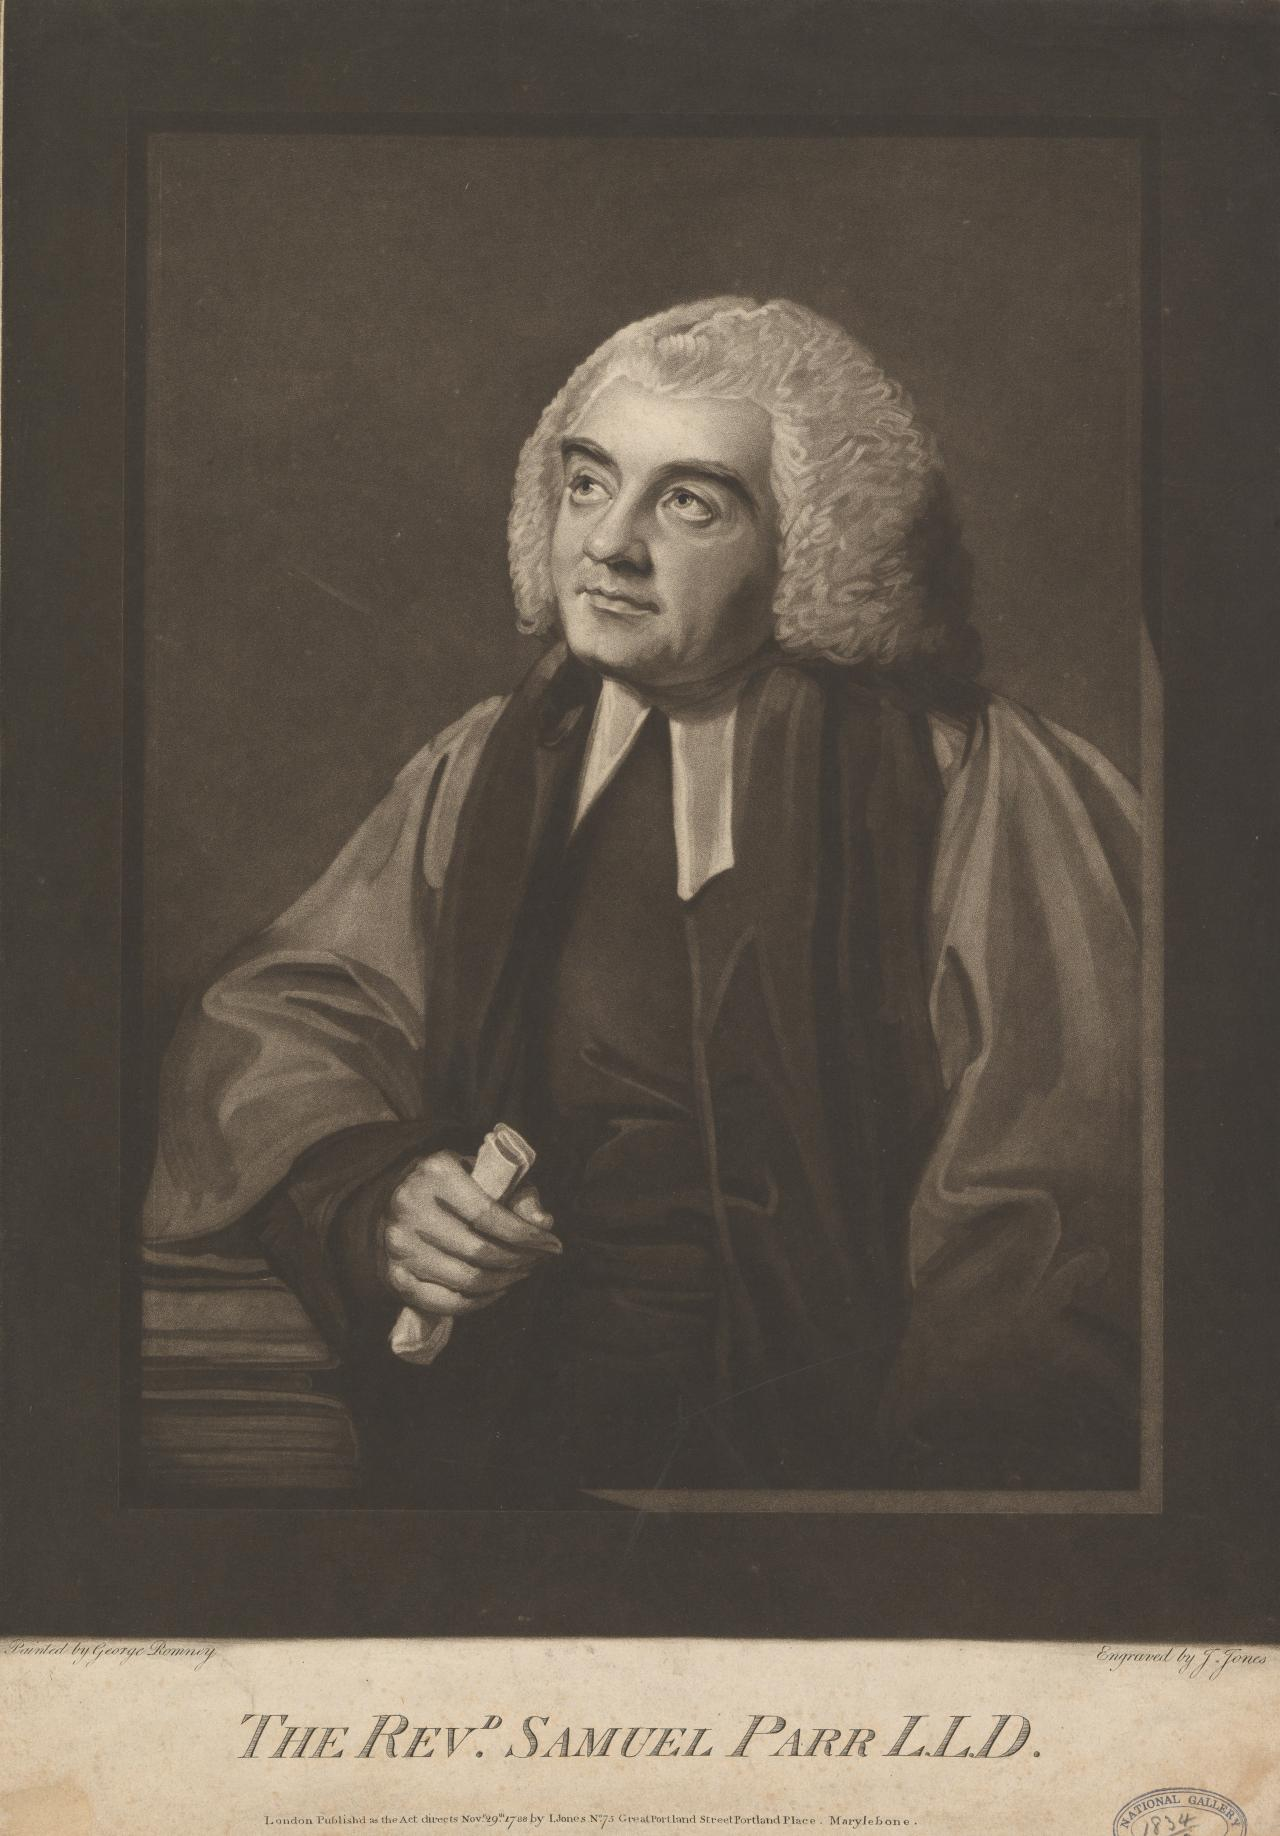 The Rev Samuel Parr